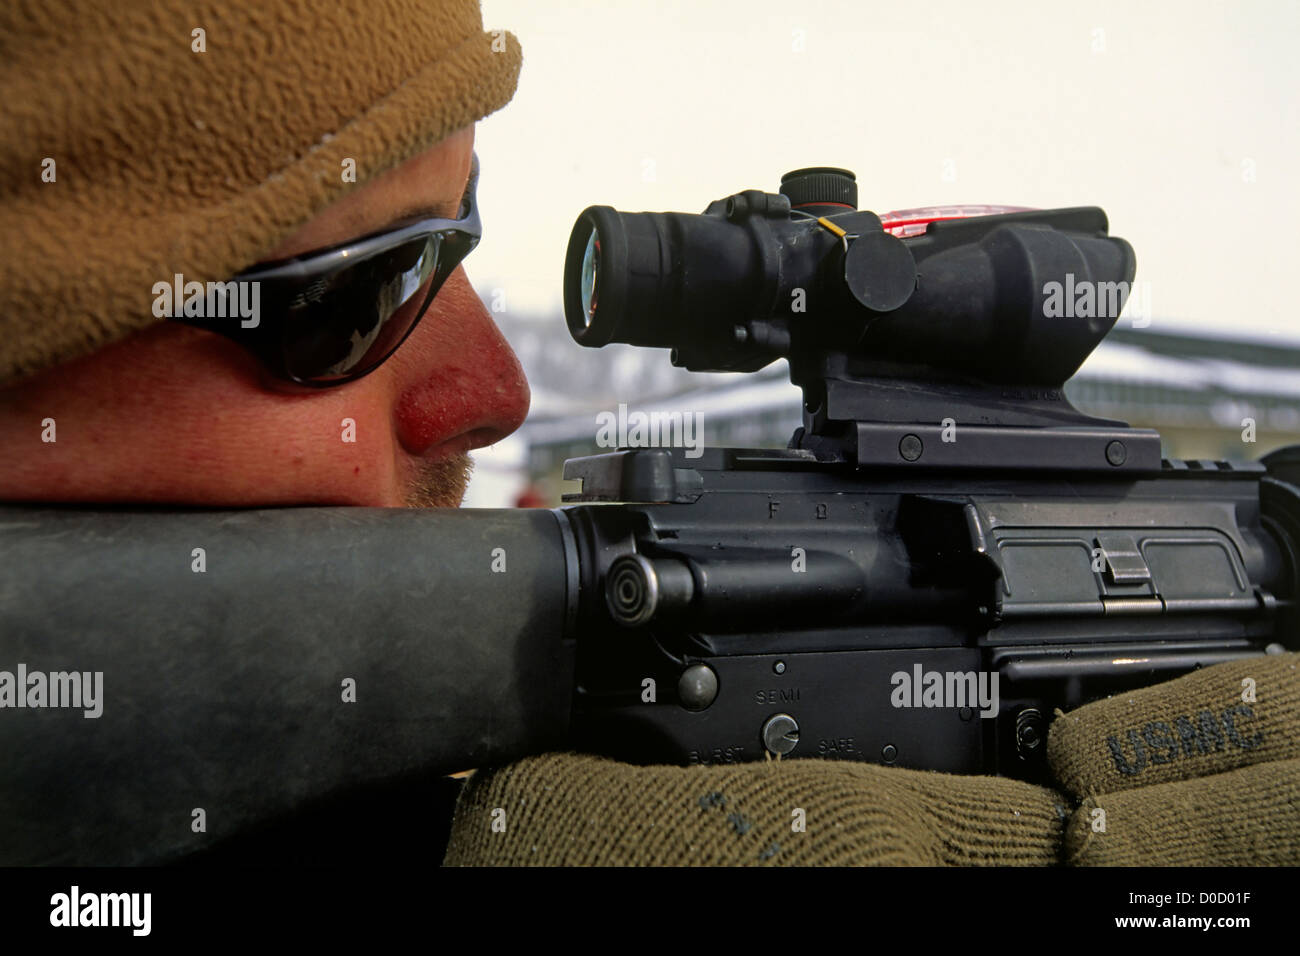 A Marine Scans the Snowy Distance Through the Scope of His M-16 During Mountain Warfare Training - Stock Image